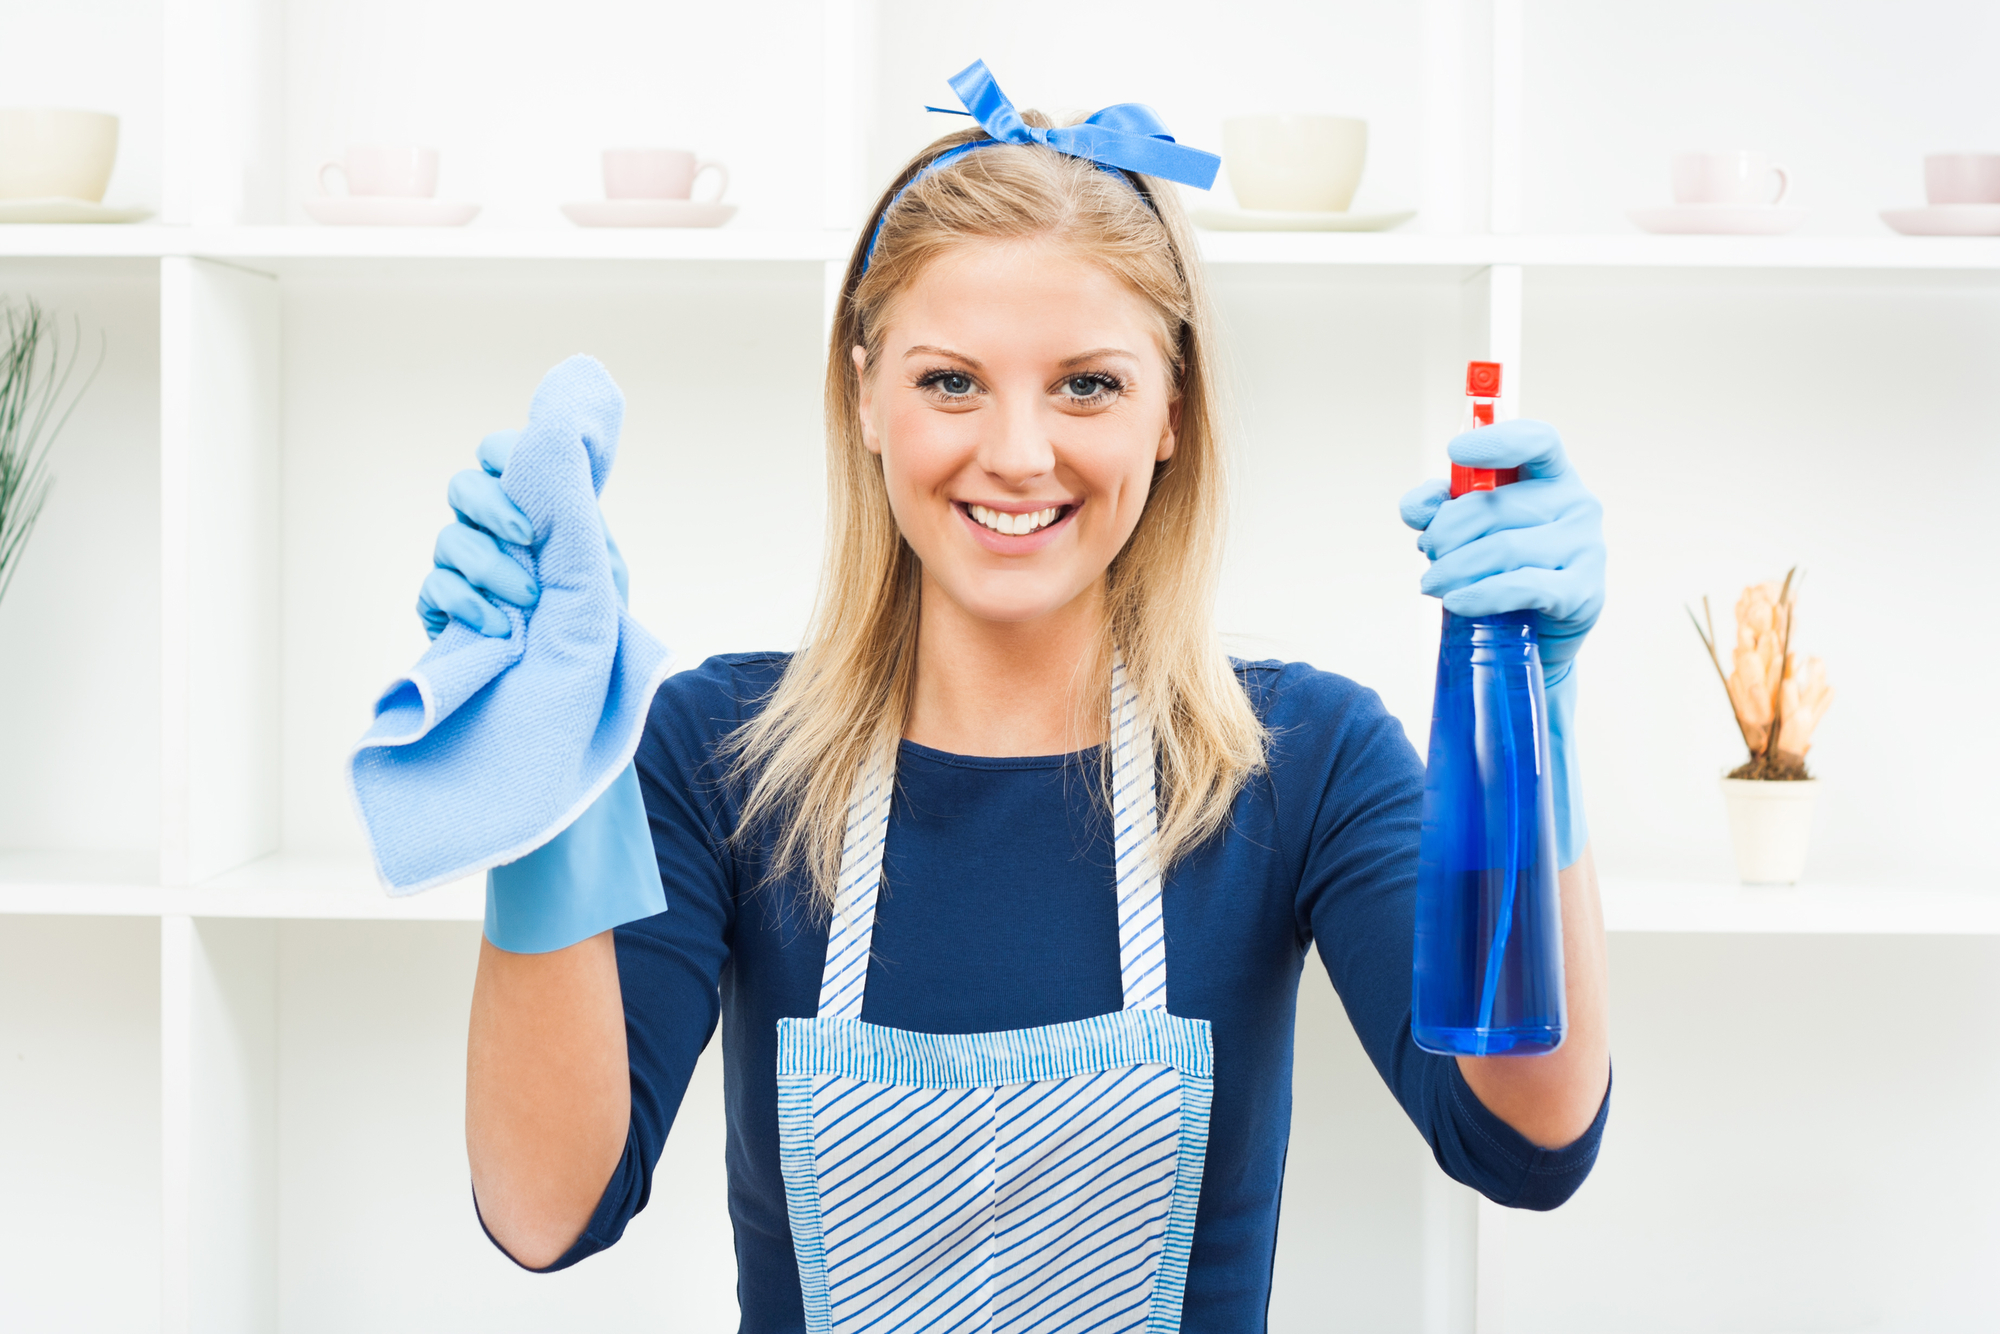 Woman dressed in apron with a bottle of cleaner in one hand and a rag in the other